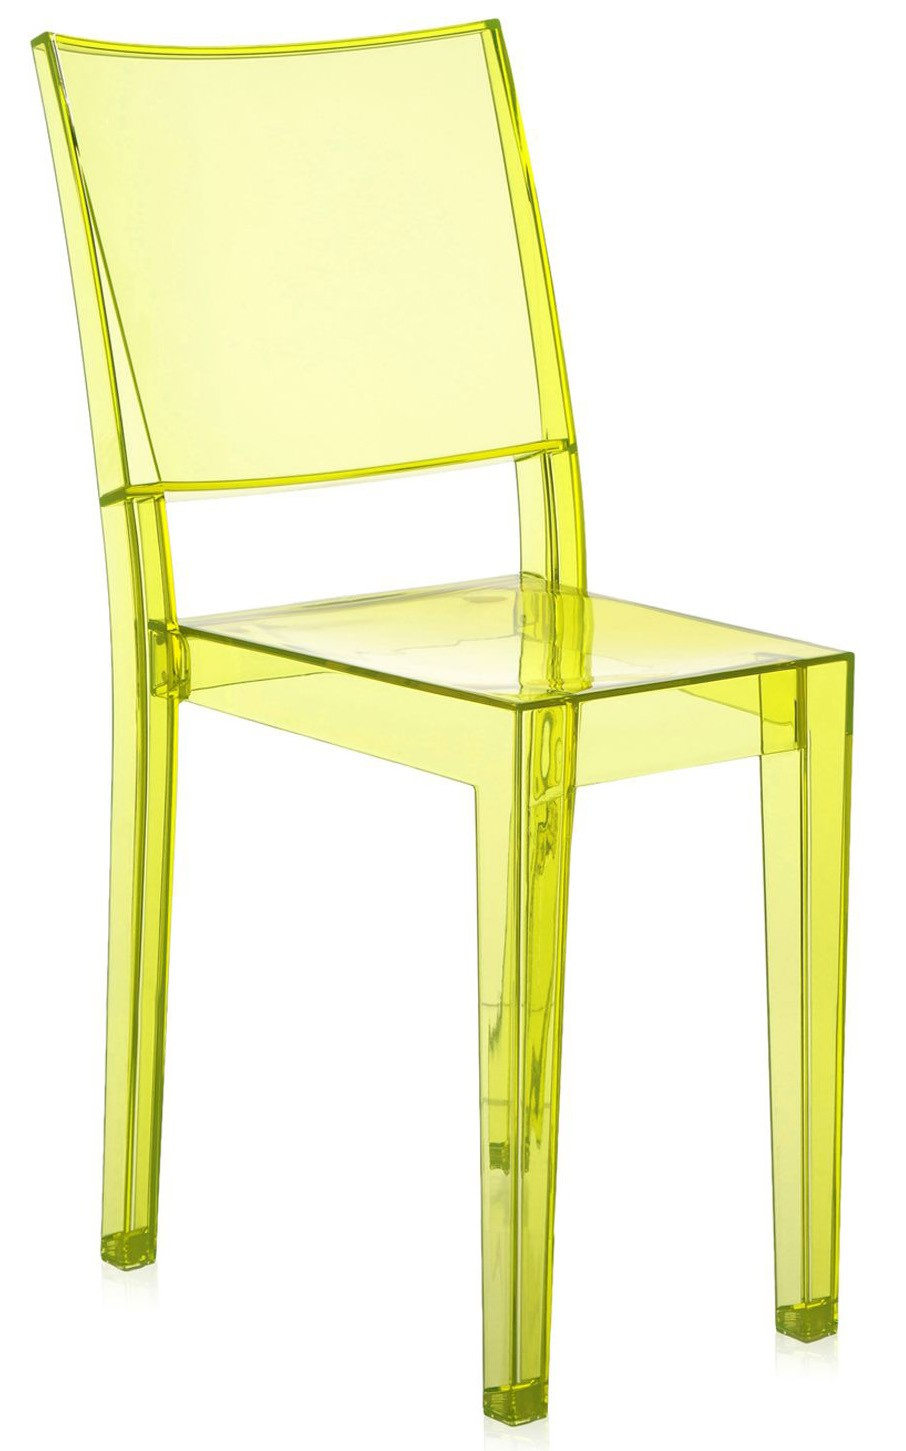 Kartell La Marie Chair (Priced Each, Sold in Sets of 2)